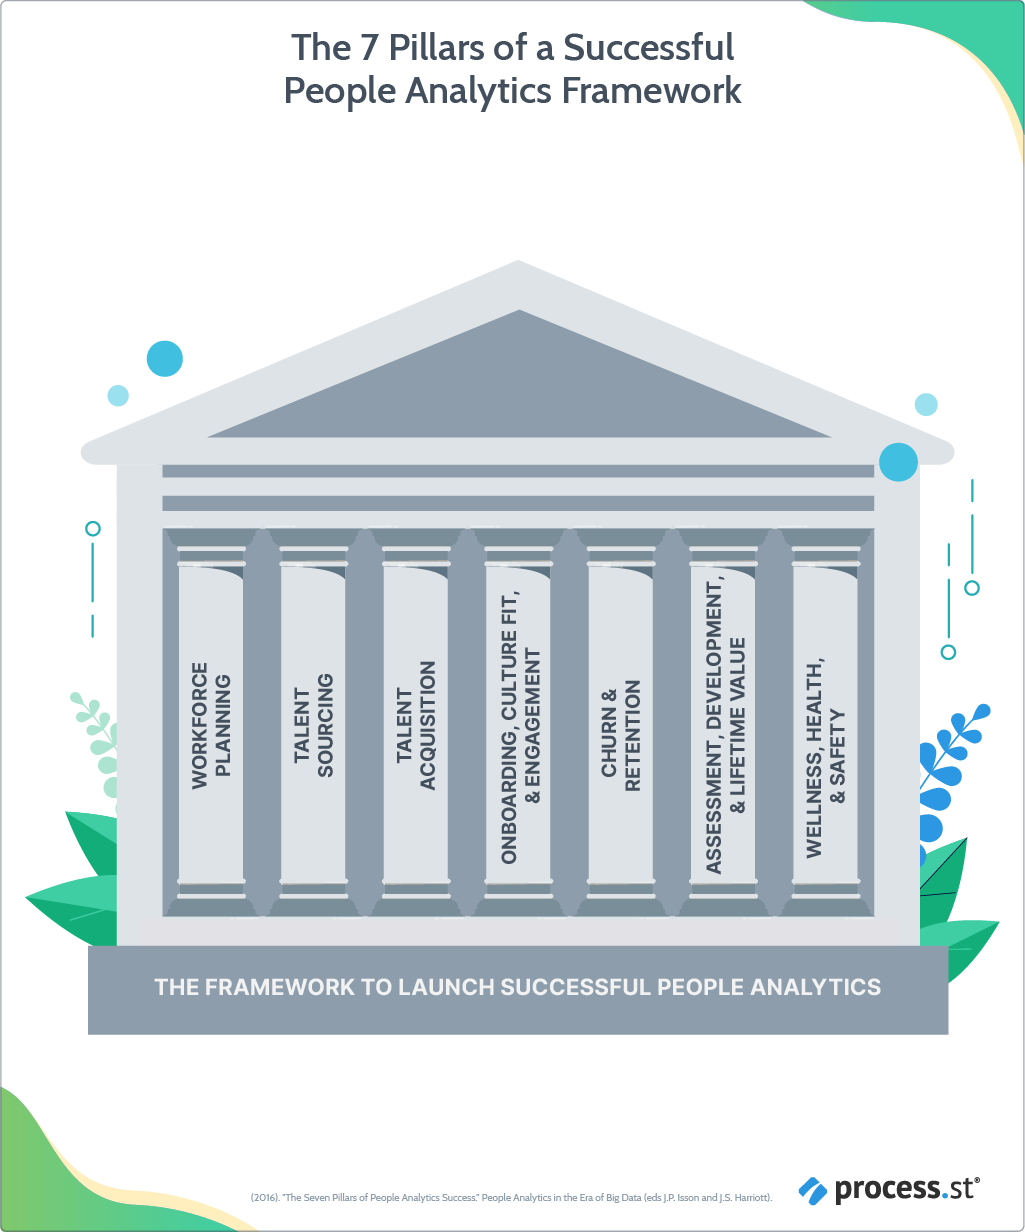 The 7 Pillars of a Successful People Analytics Framework